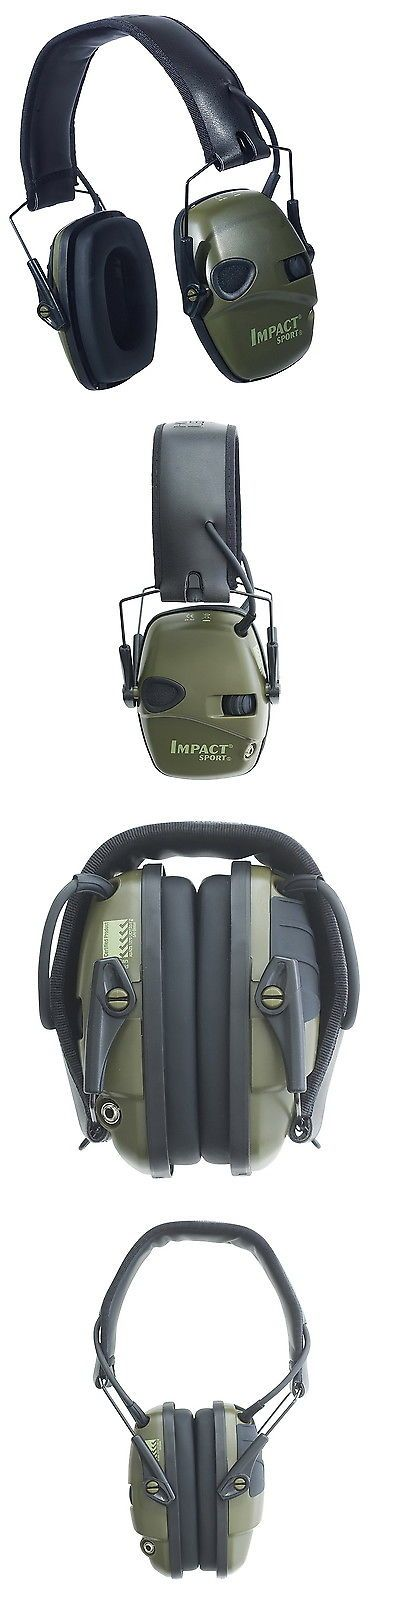 Hearing Protection 73942: Electronic Ear Muff Headphones Gun Shooting Protection Hunting Plugs Outdoor Aux -> BUY IT NOW ONLY: $59.22 on eBay!